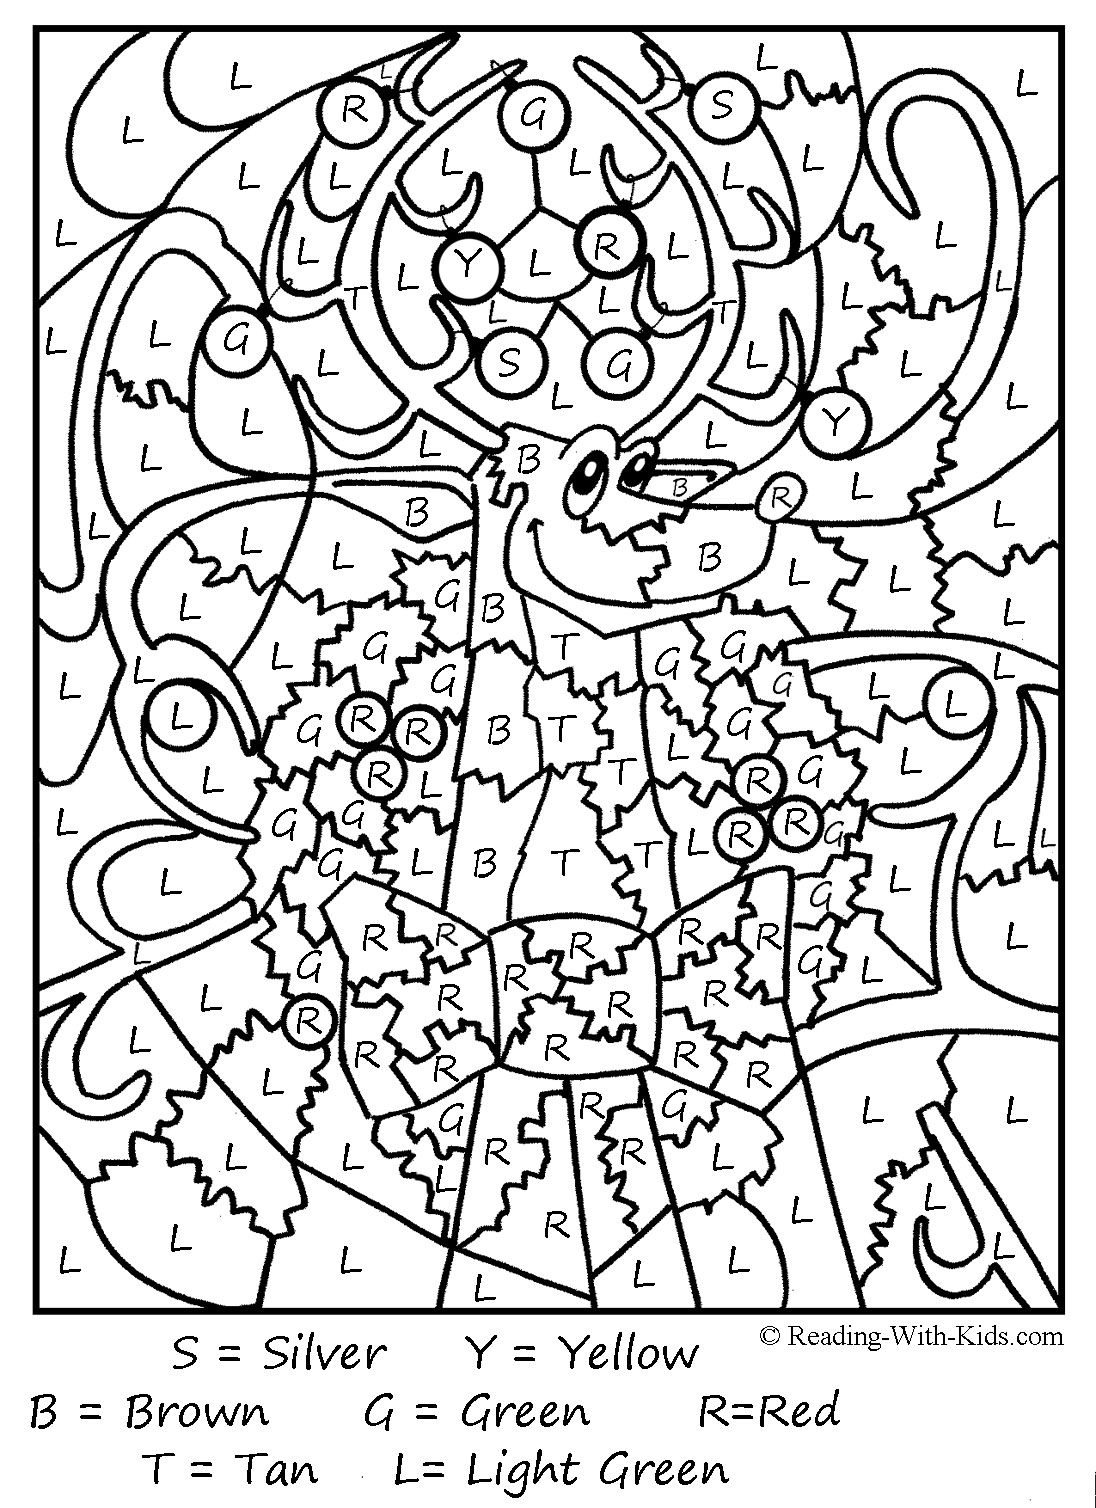 Christmas Coloring Pages For Elementary Students With Color By Number Printable